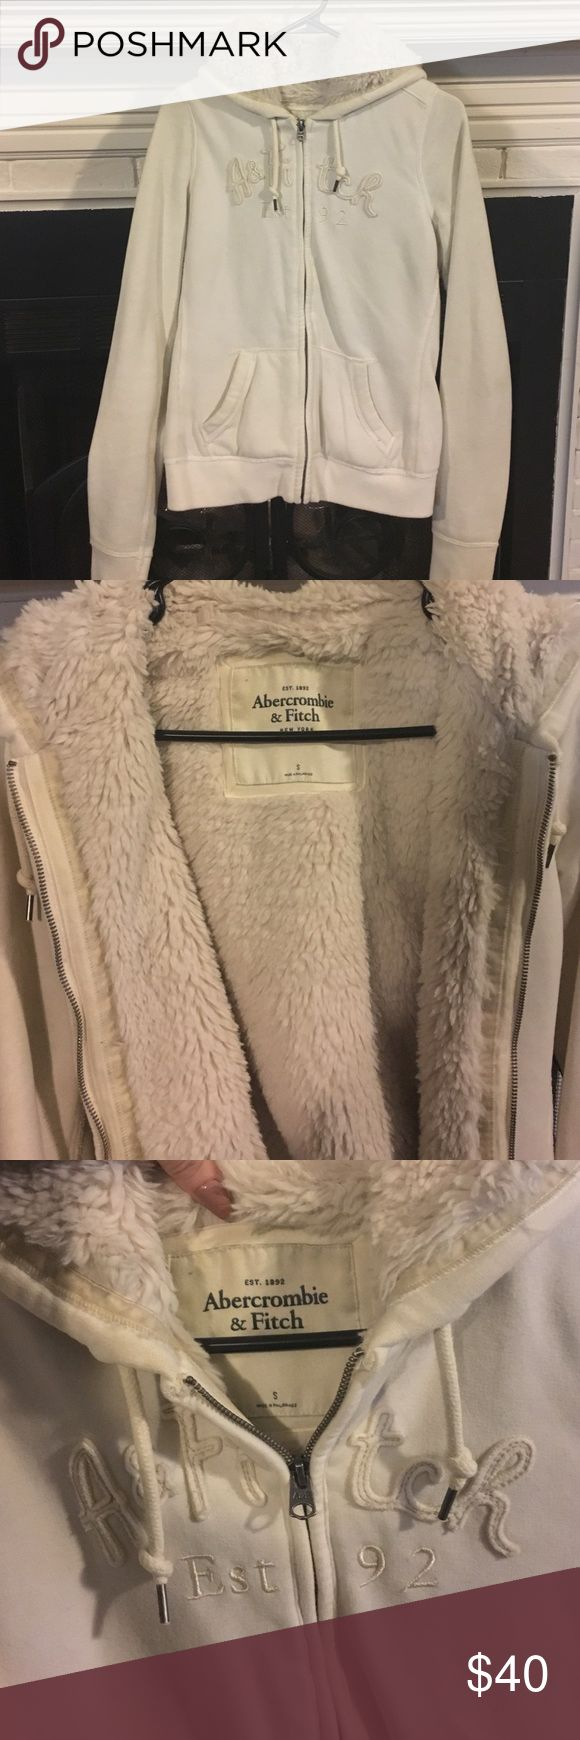 Womens Small Abercrombie & Fitch Fur Zip up Hoodie Womens Small, Cream color, soft fur inside. Great condition. Abercrombie & Fitch Tops Sweatshirts & Hoodies